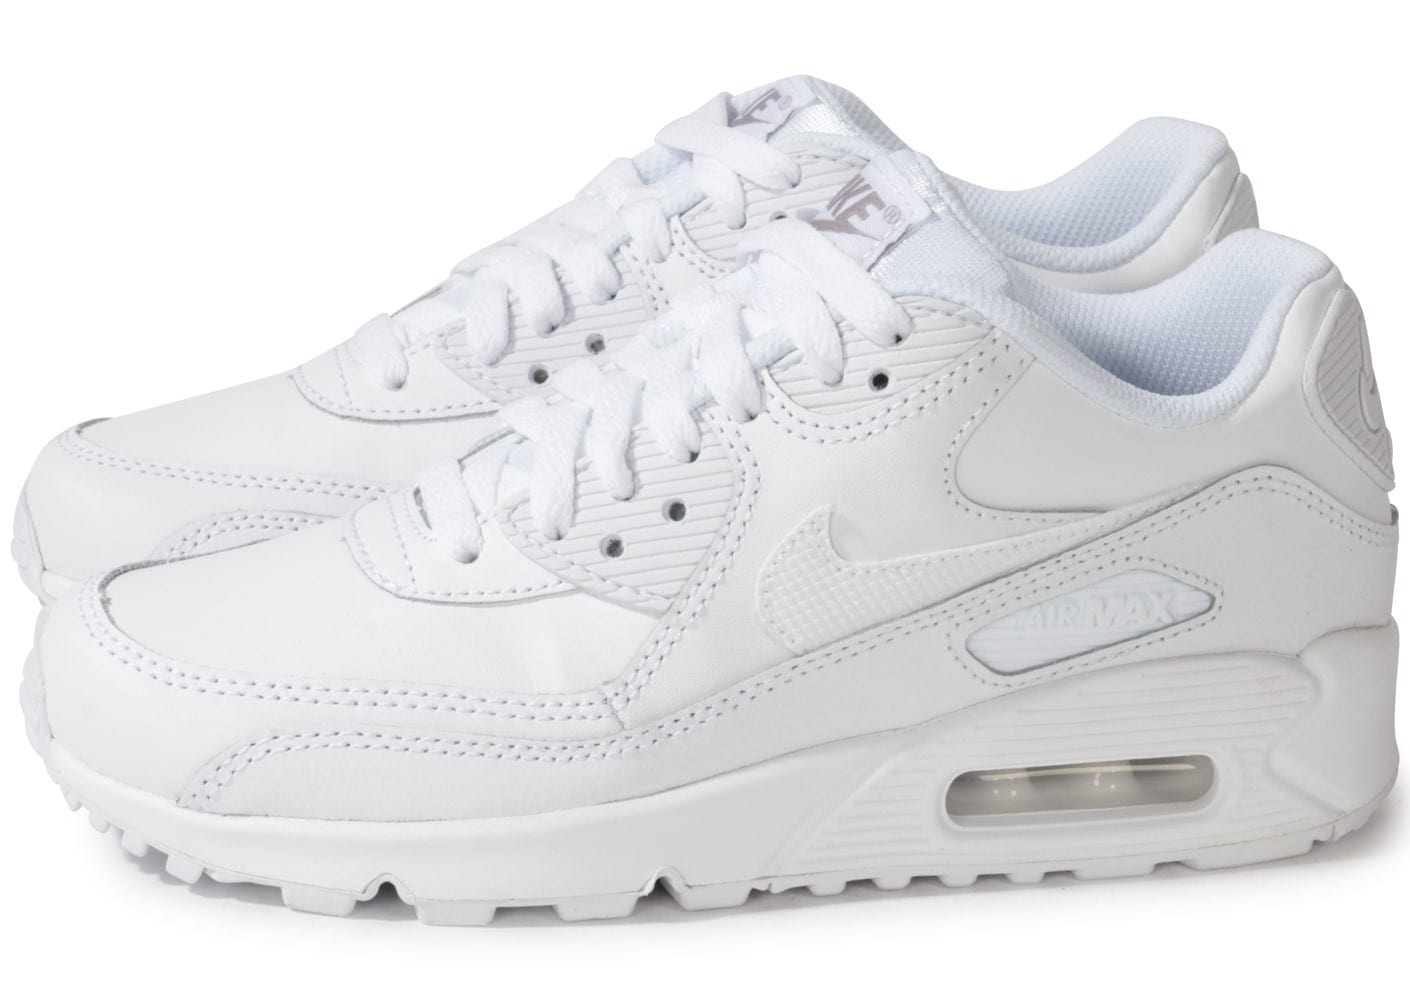 nike air max 90 triple blanc chaussures chaussures chausport. Black Bedroom Furniture Sets. Home Design Ideas